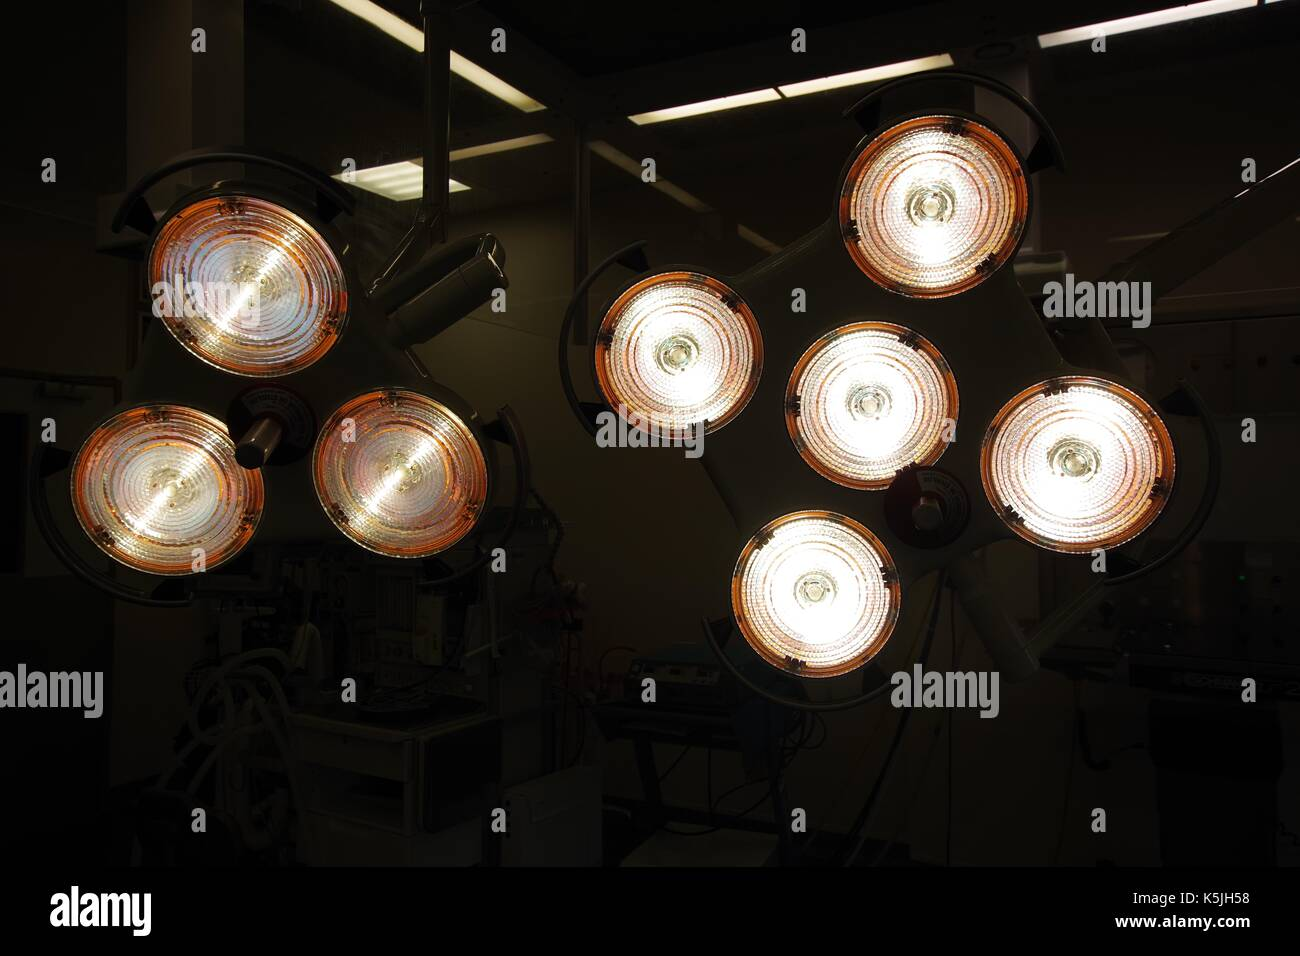 Surgical Lights in a Modern British Hospital Operating Theatre. UK, 2017. - Stock Image